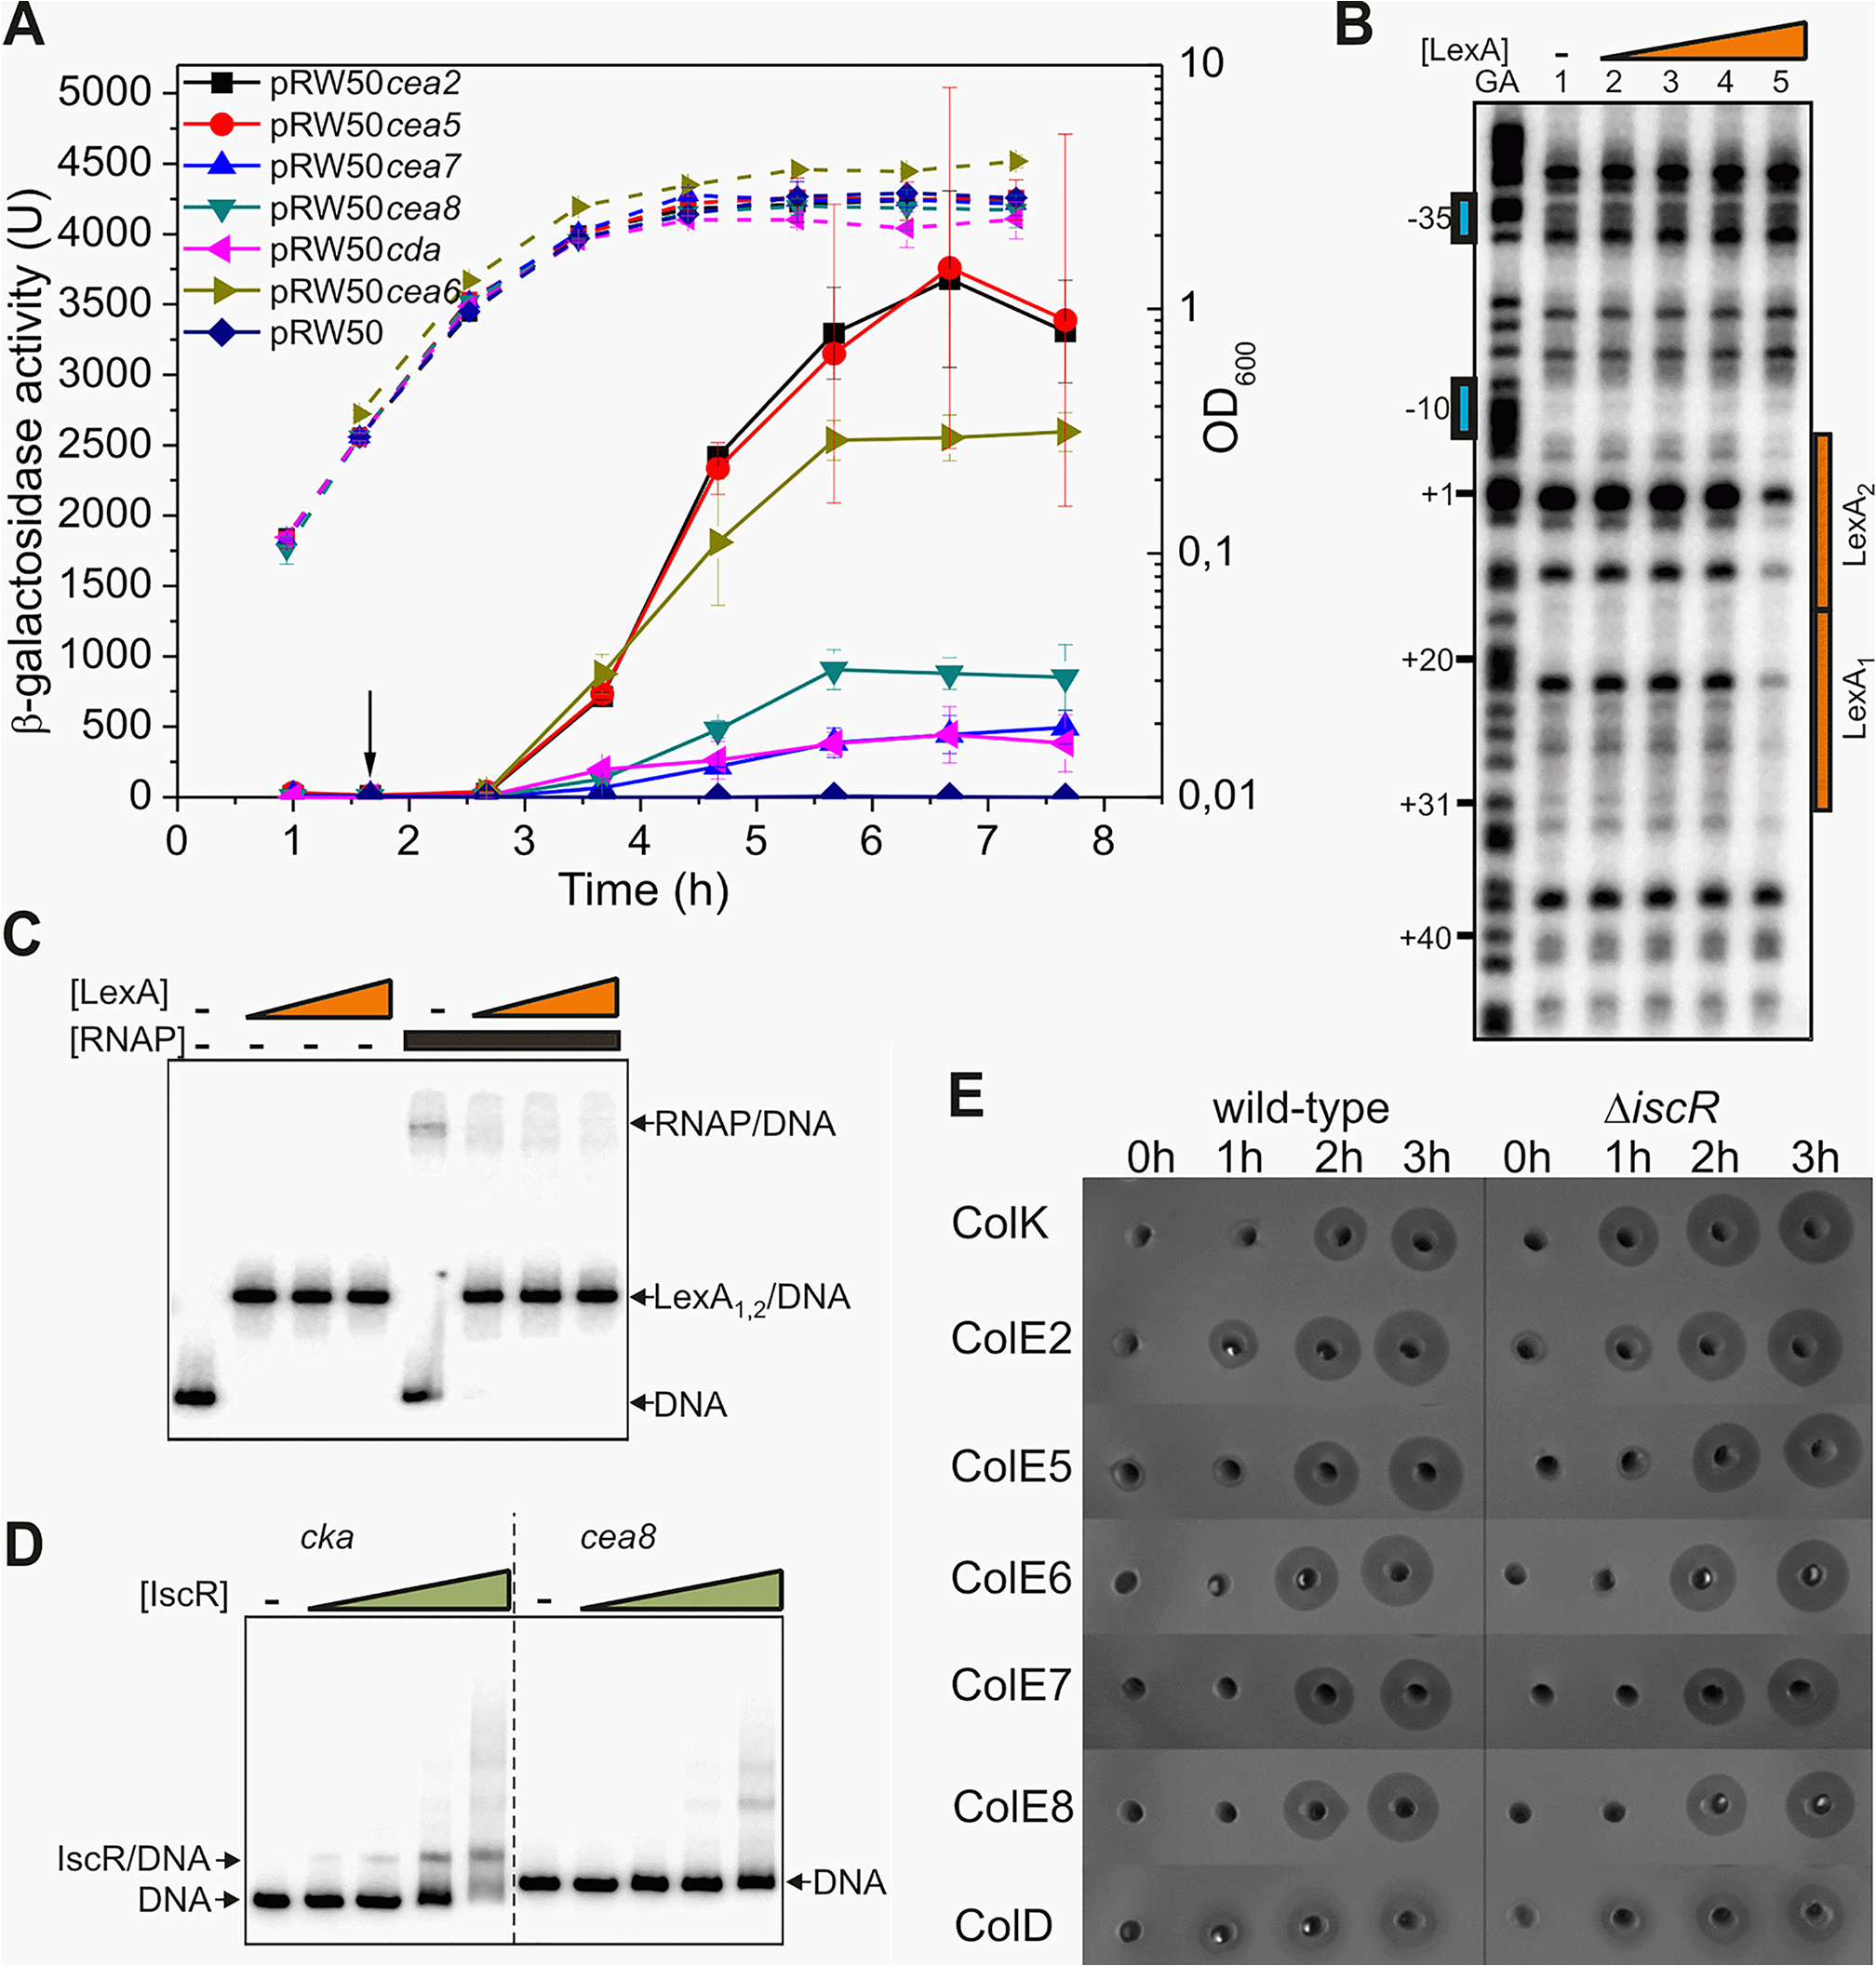 IscR does not modulate the temporal induction of nuclease colicins.